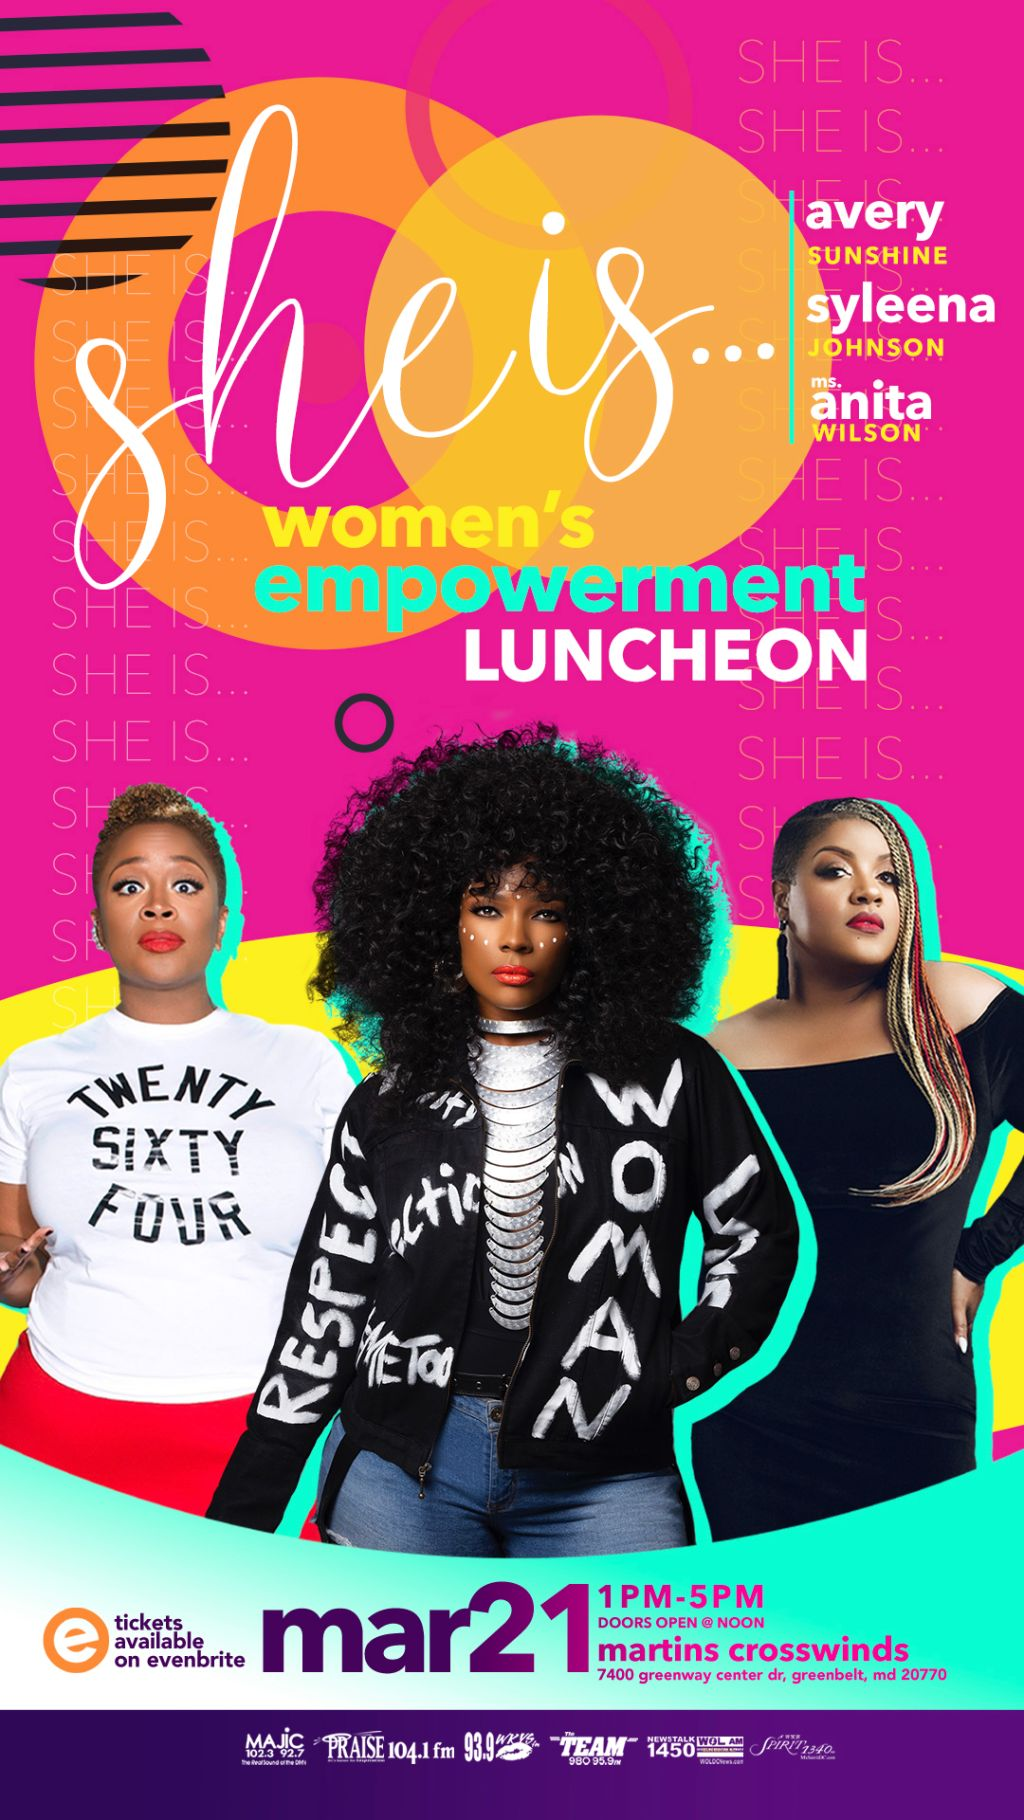 SHE IS Women's Empowerment Luncheon